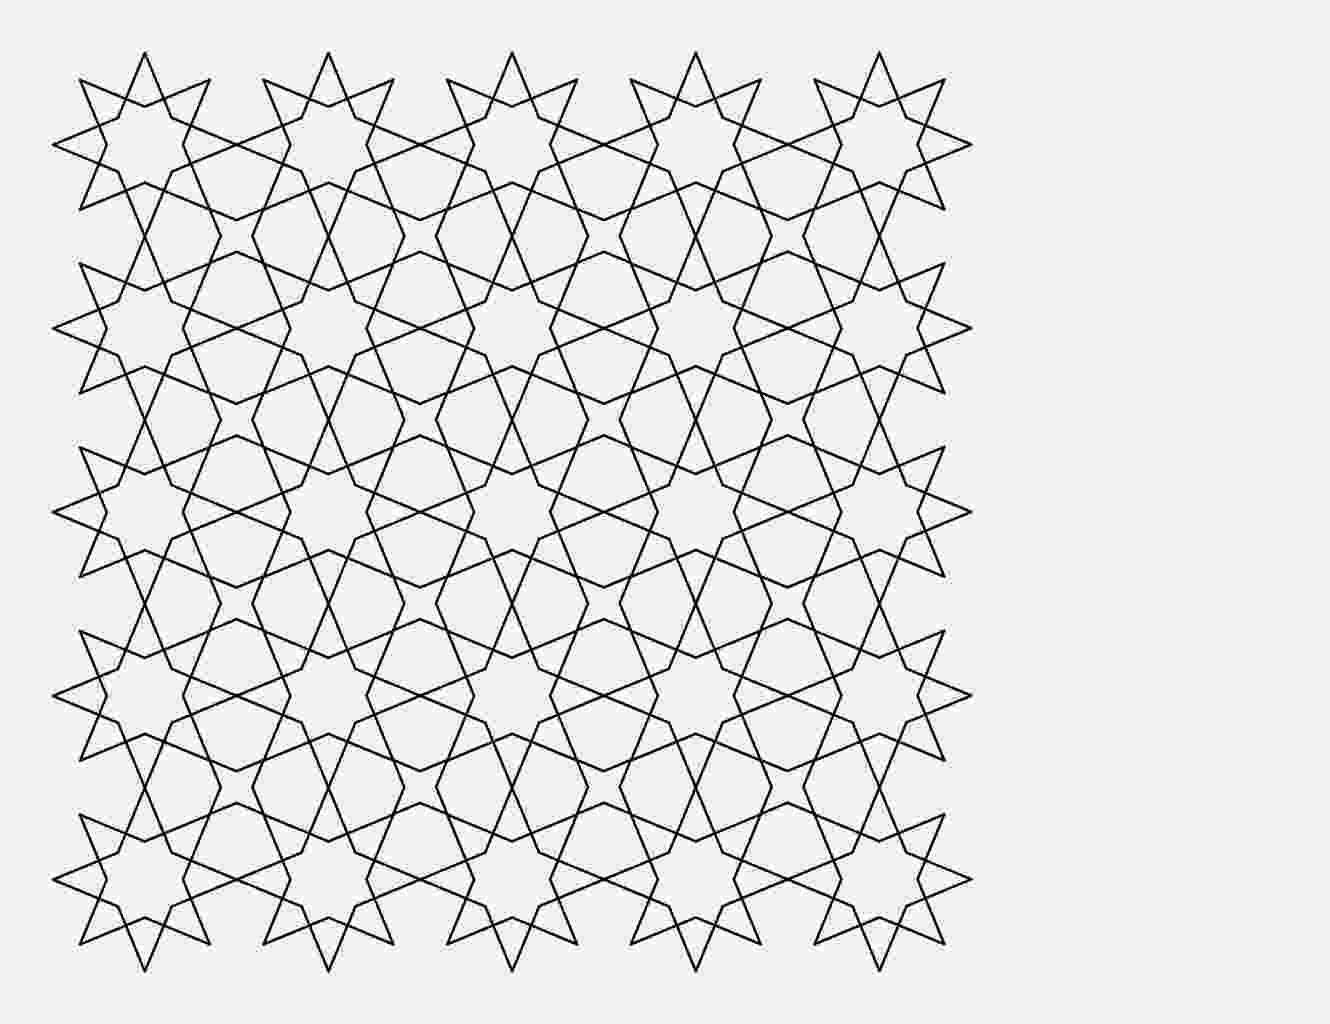 tessellation templates tessellation with octagon and square coloring page free tessellation templates